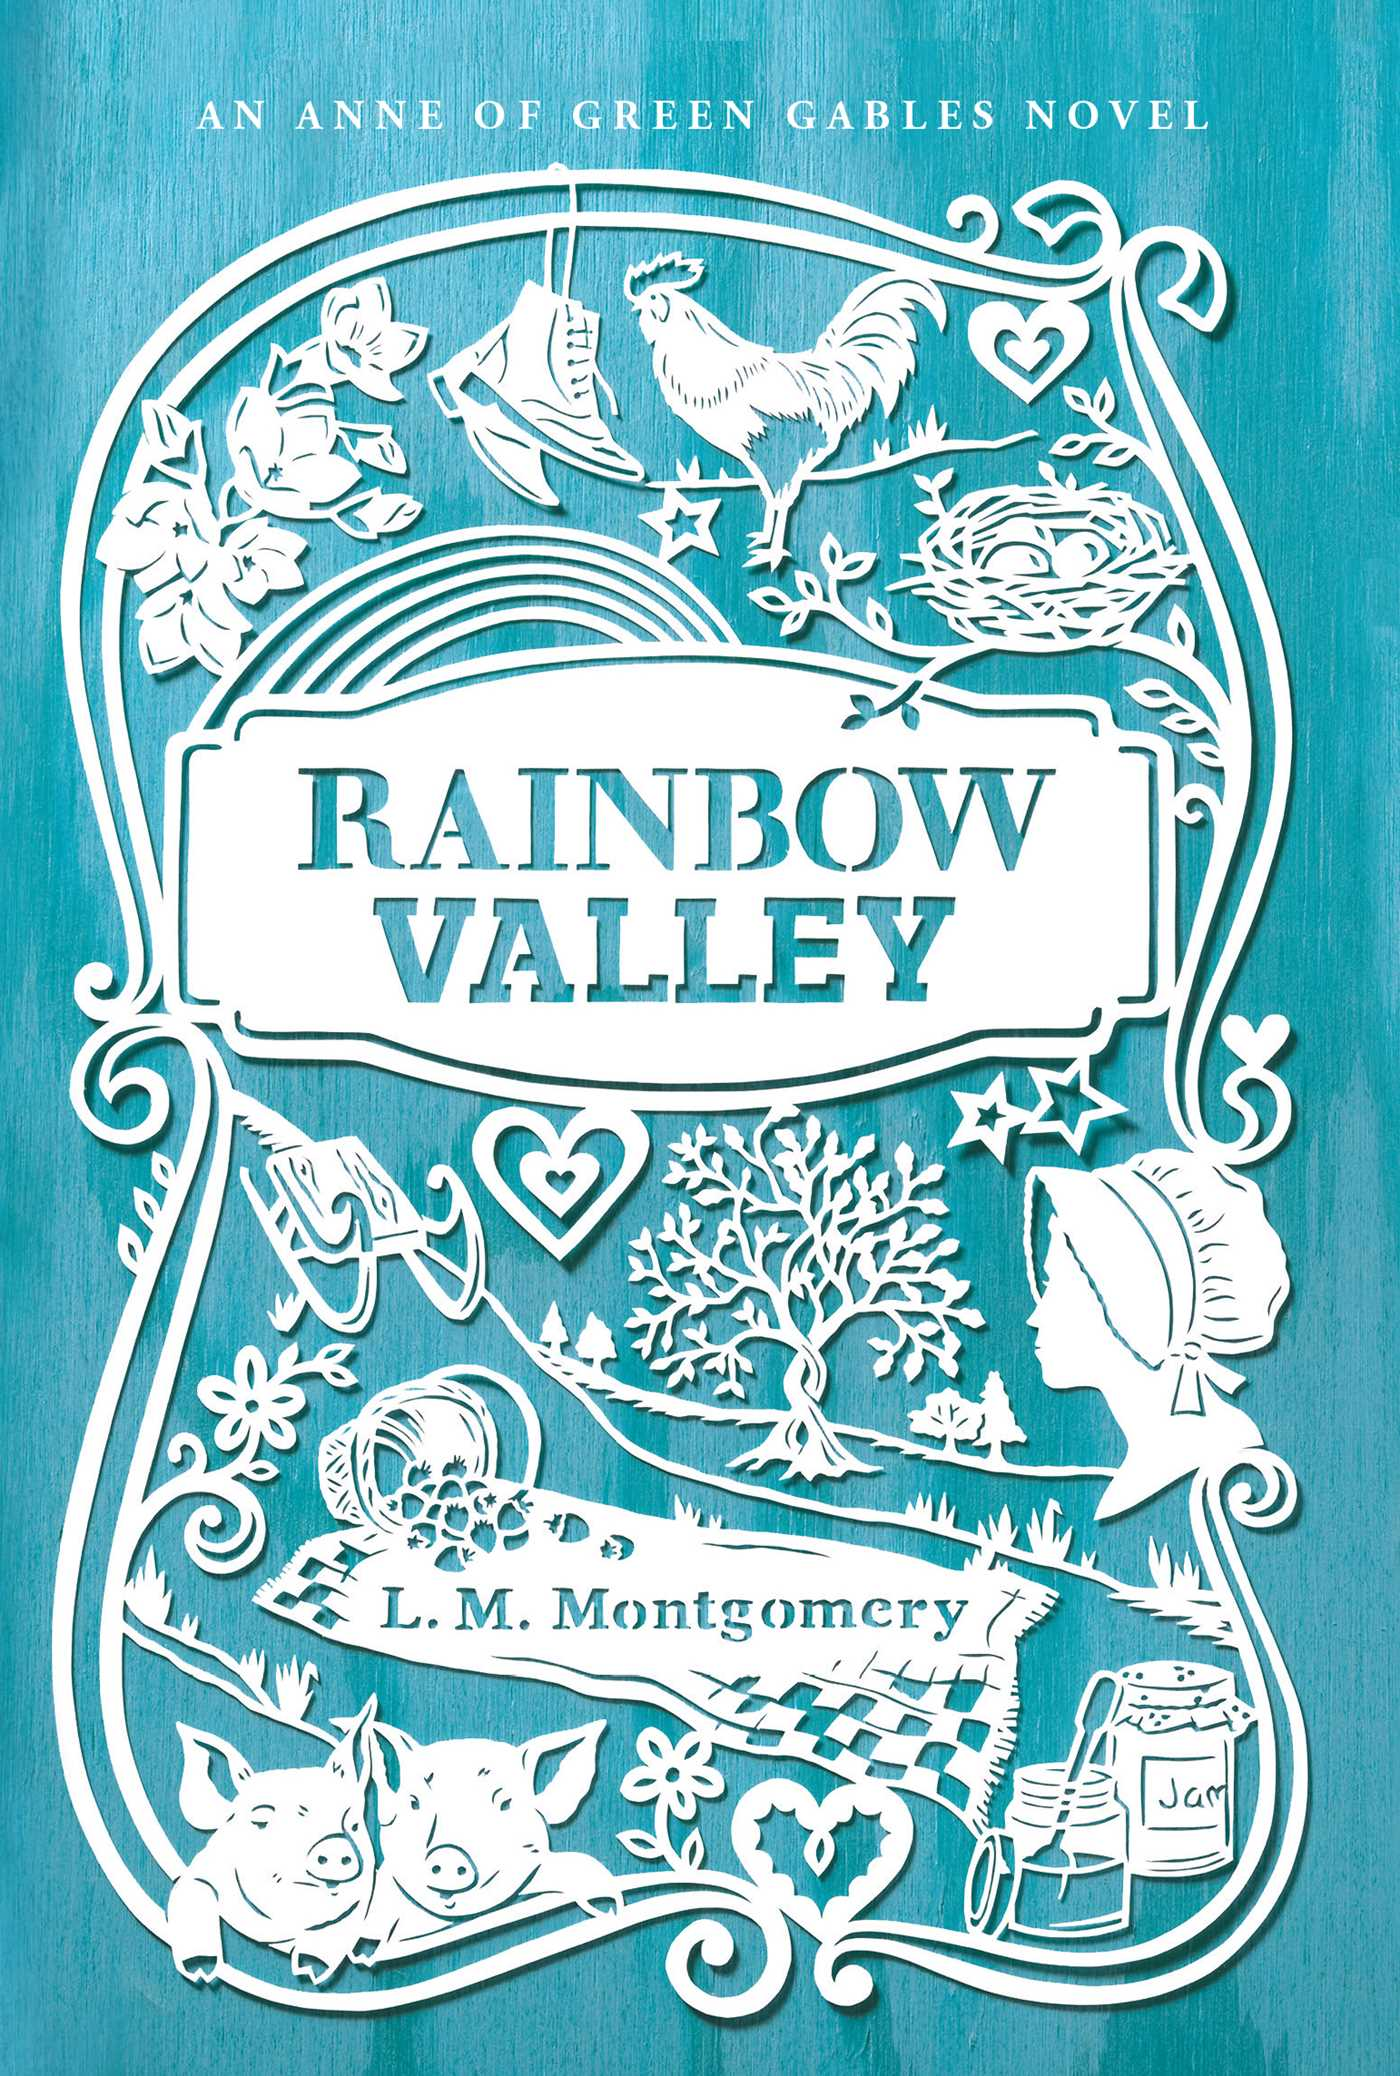 Rainbow-valley-9781442490178_hr